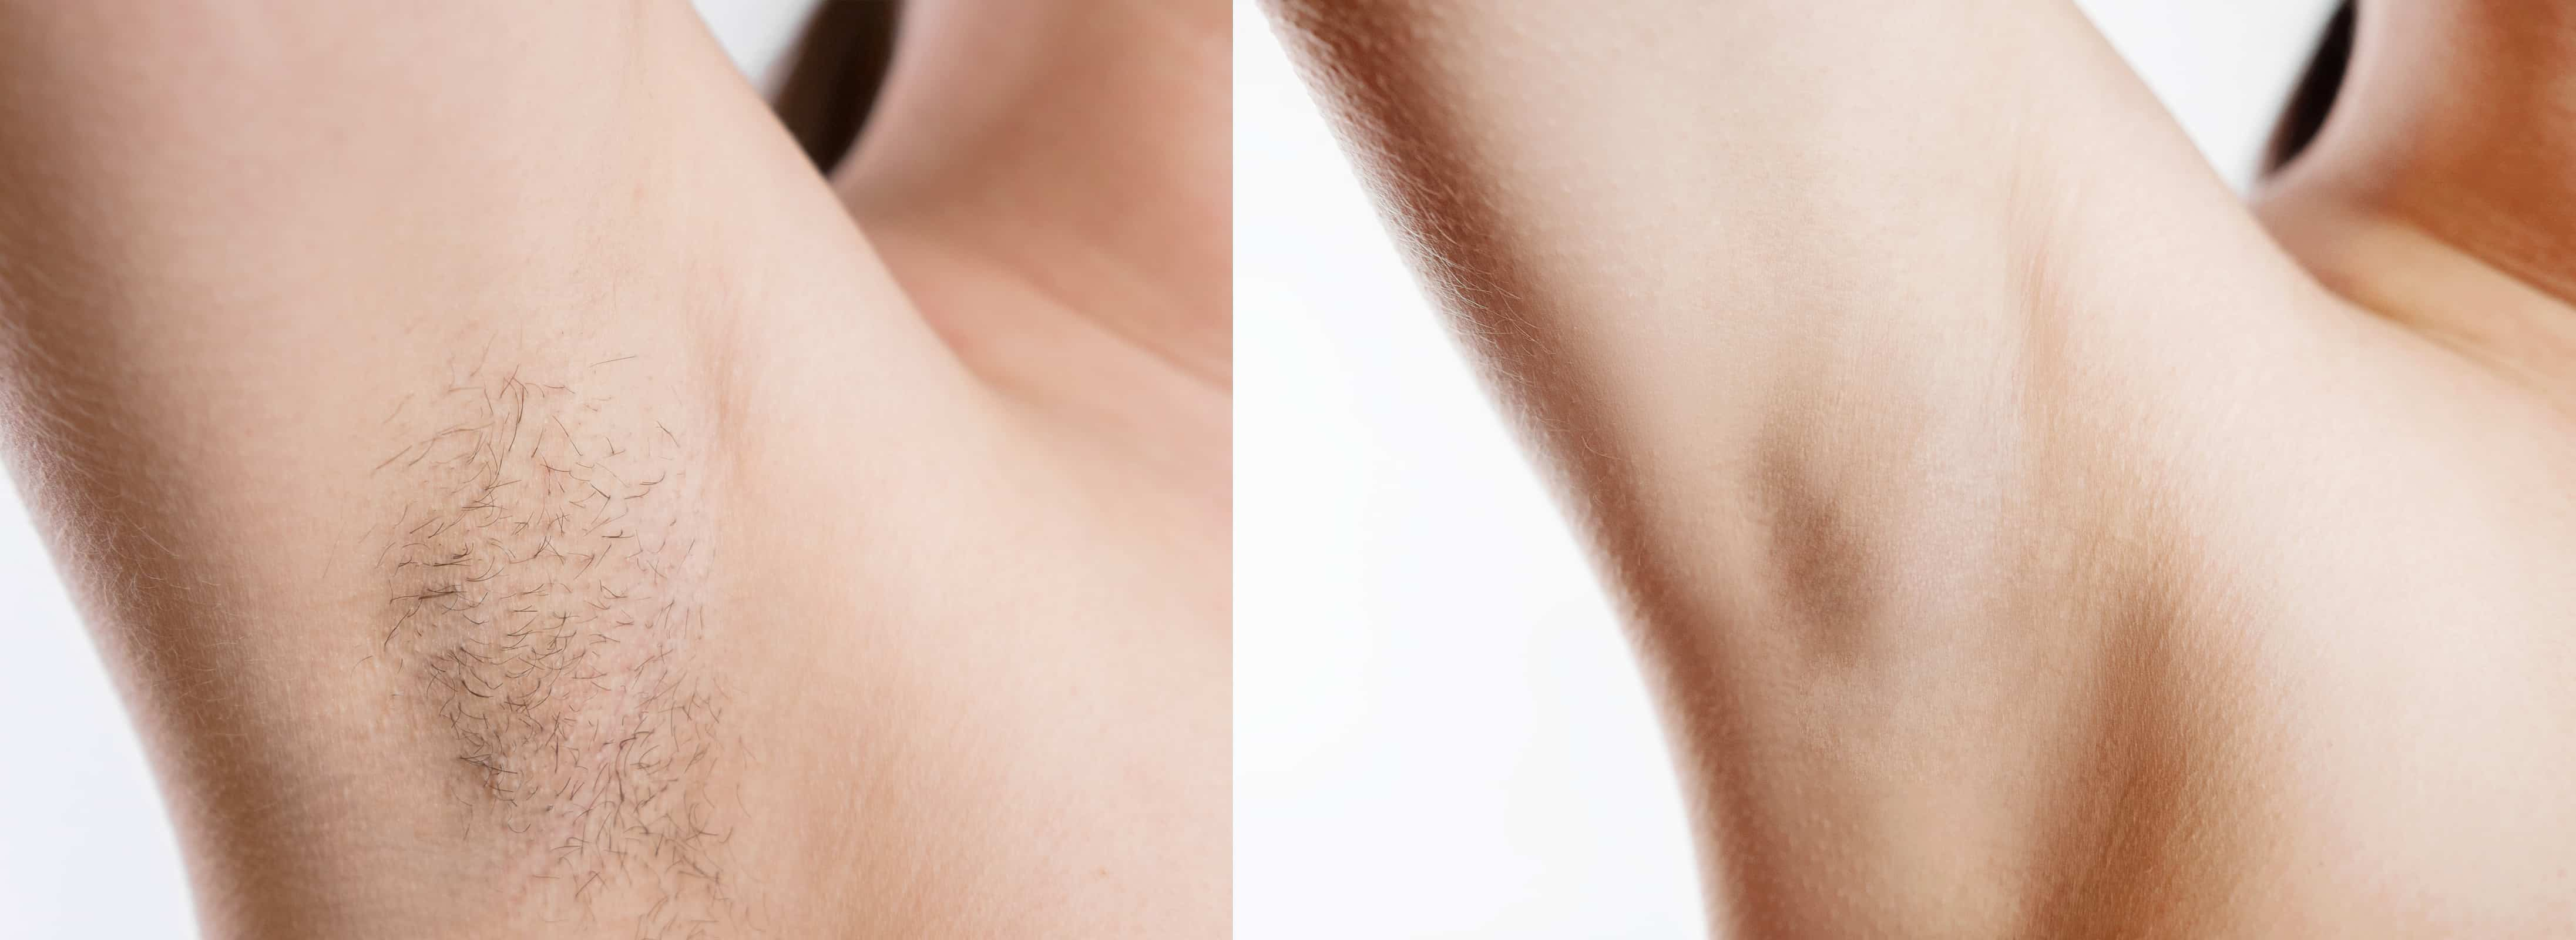 Before and after image of laser hair removal on armpit